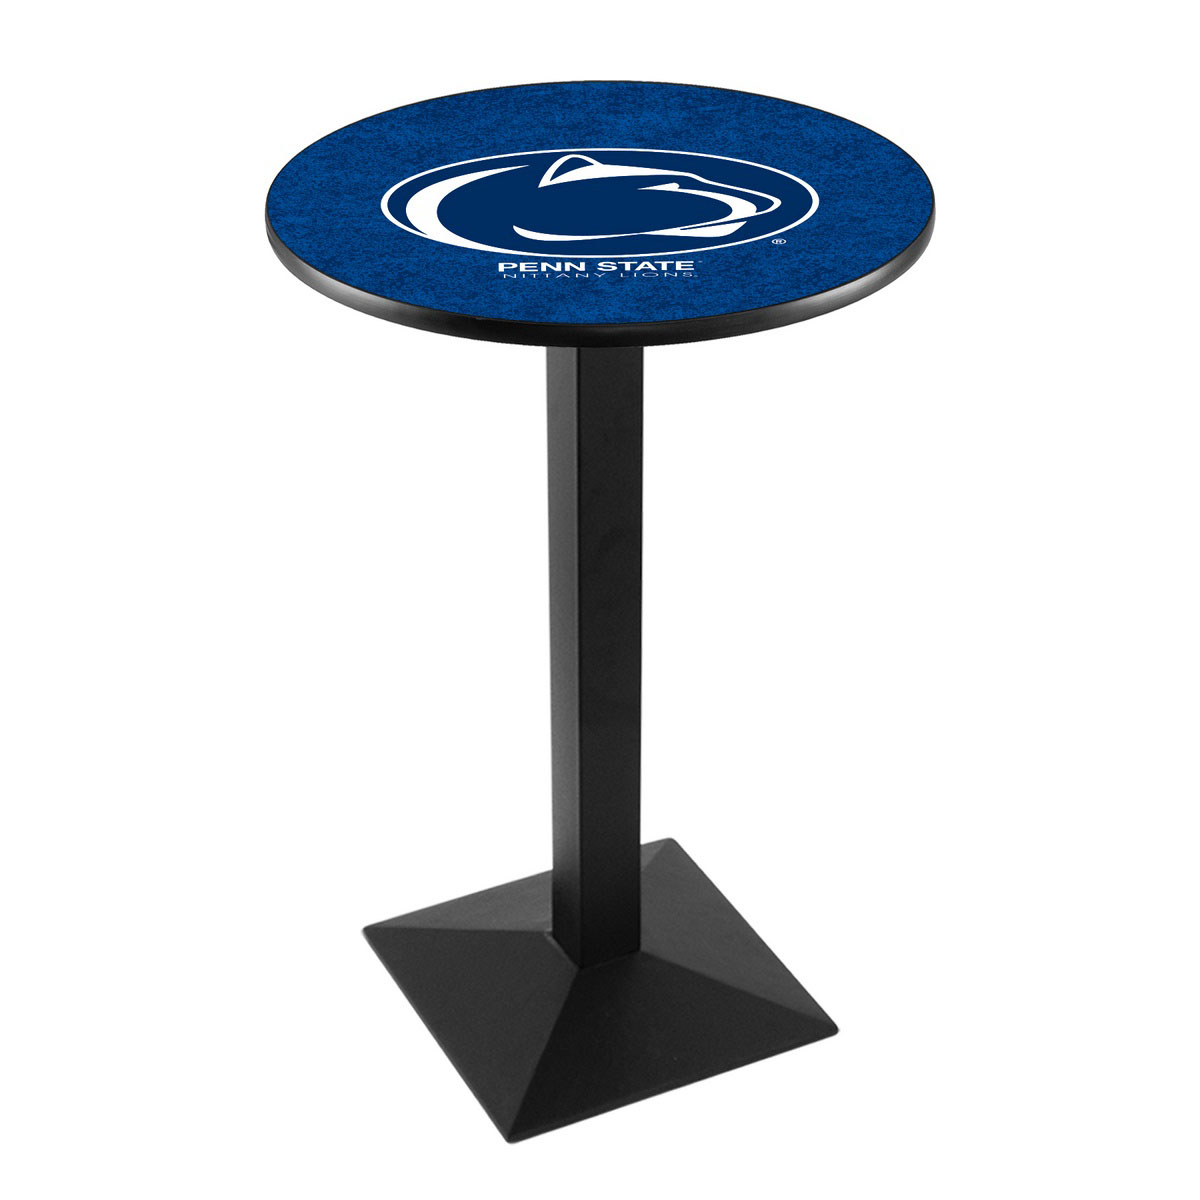 Beautiful Pennsylvania State University Logo Pub Bar Table Square Stand Product Photo